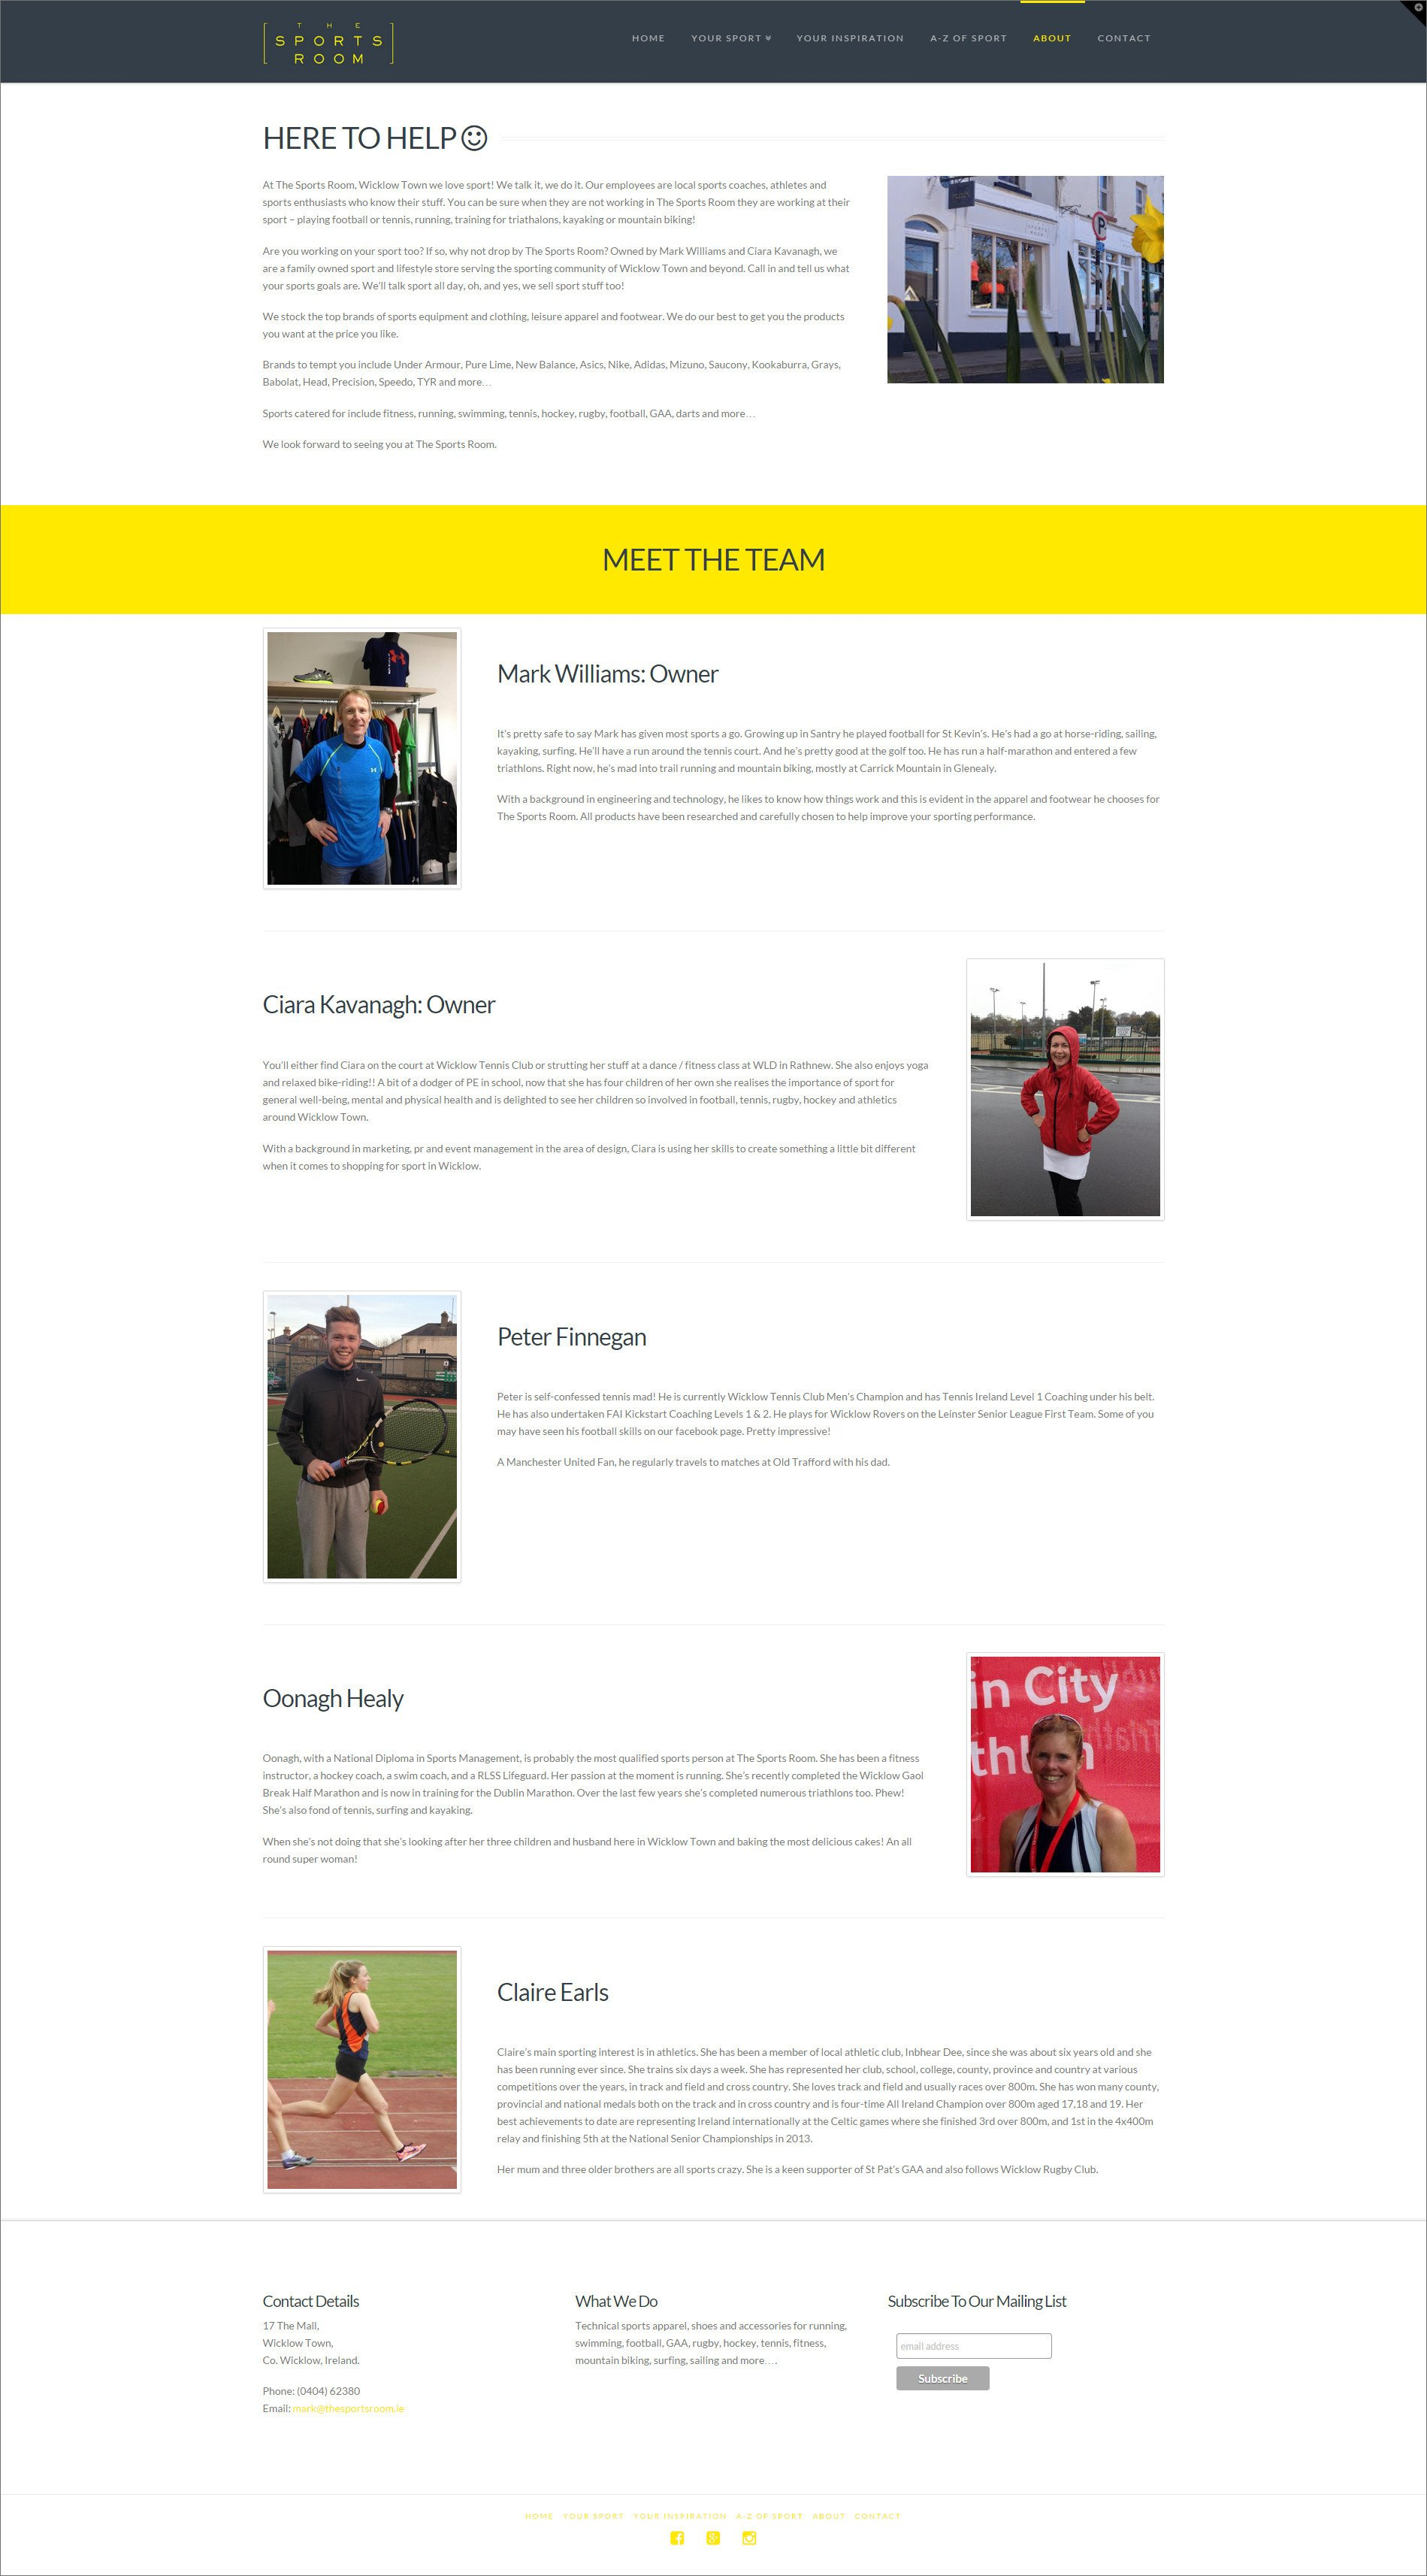 Website design for The Sports Room designed by Ridge Design About page visual